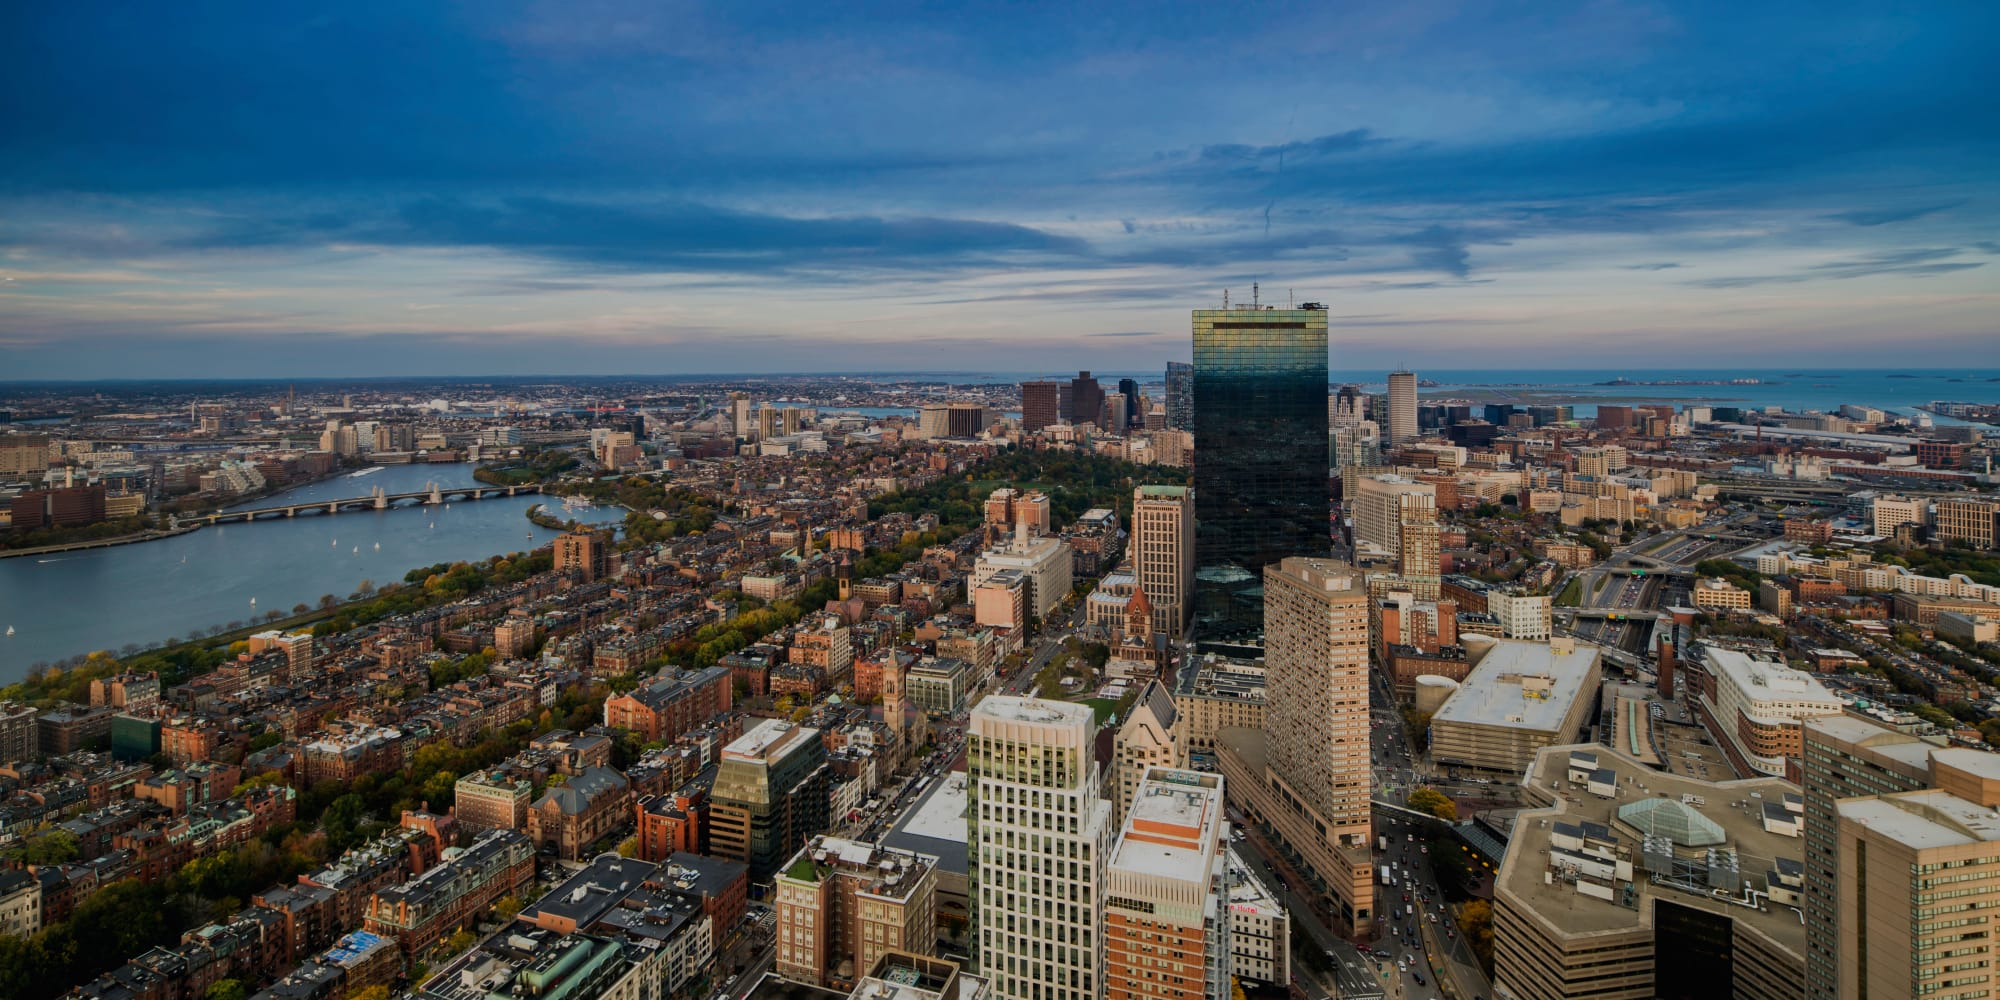 Aerial view of Boston, MA